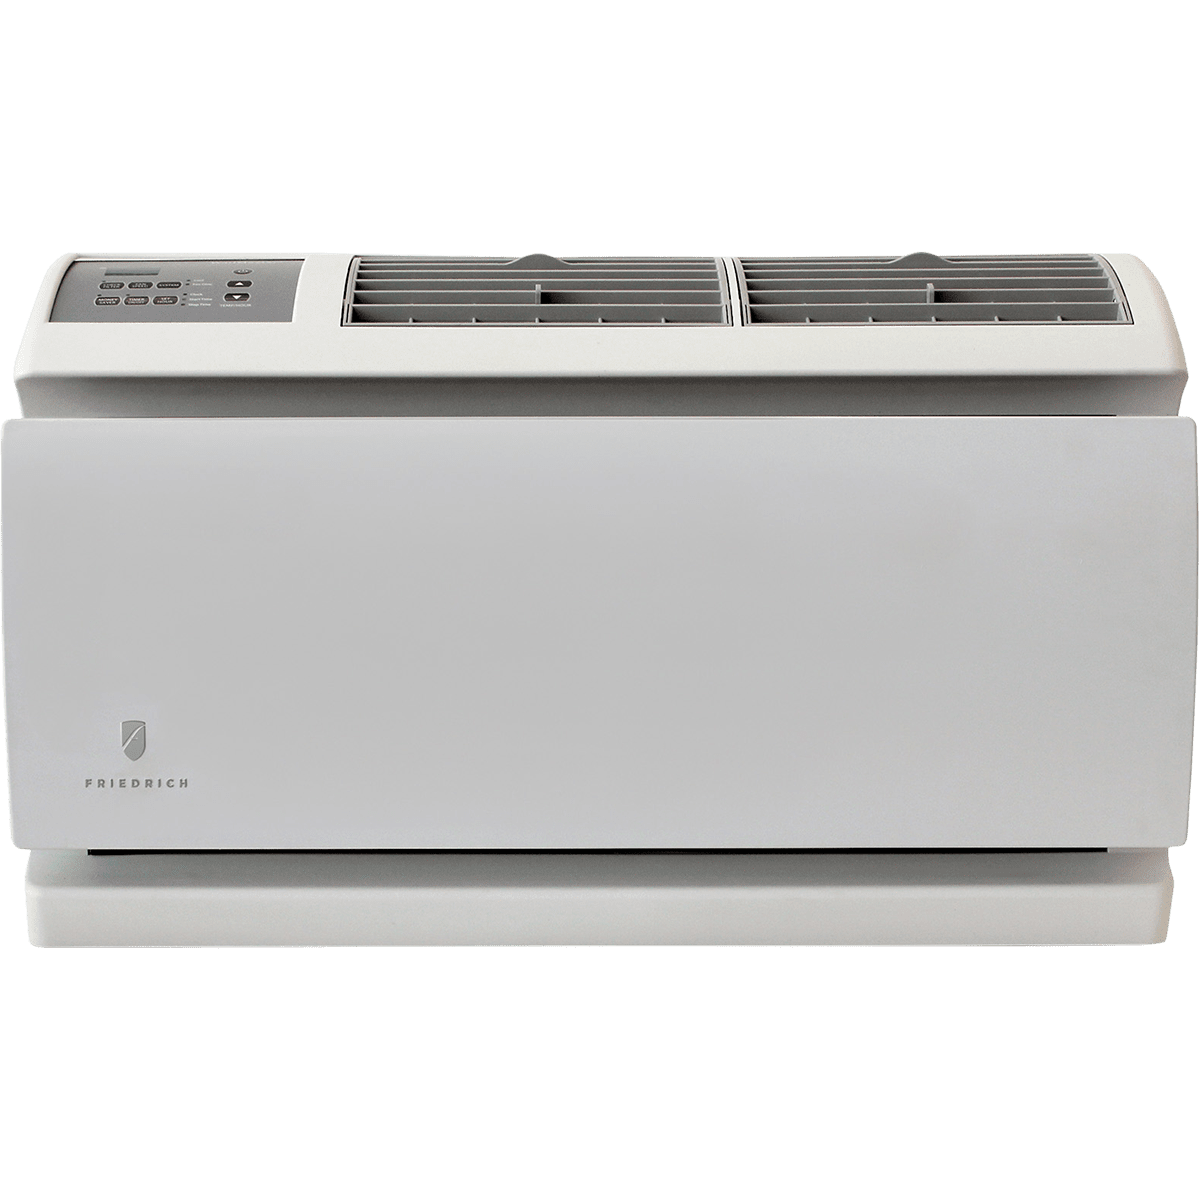 Friedrich Wallmaster 10,000 BTU Through-the-Wall Air Conditioner (WE10D33) fr6011